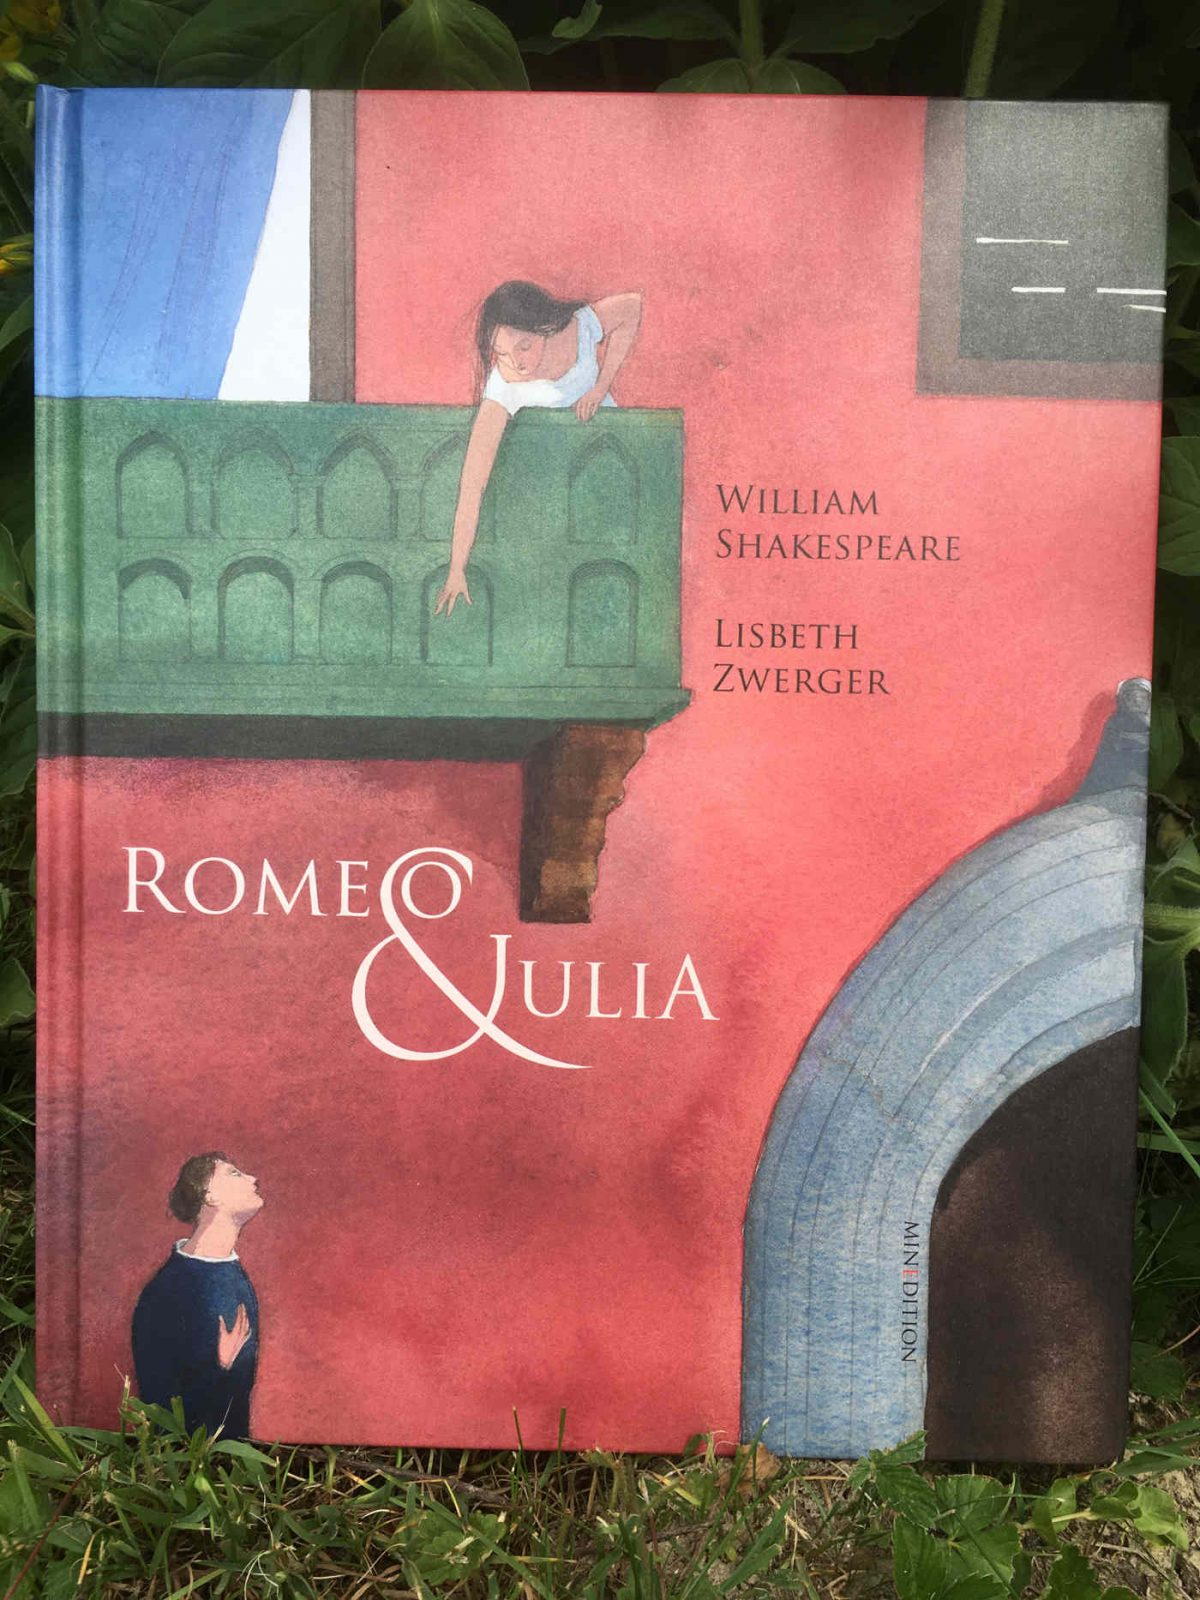 William Shakespeare und Lisbeth Zwerger: Romeo & Julia